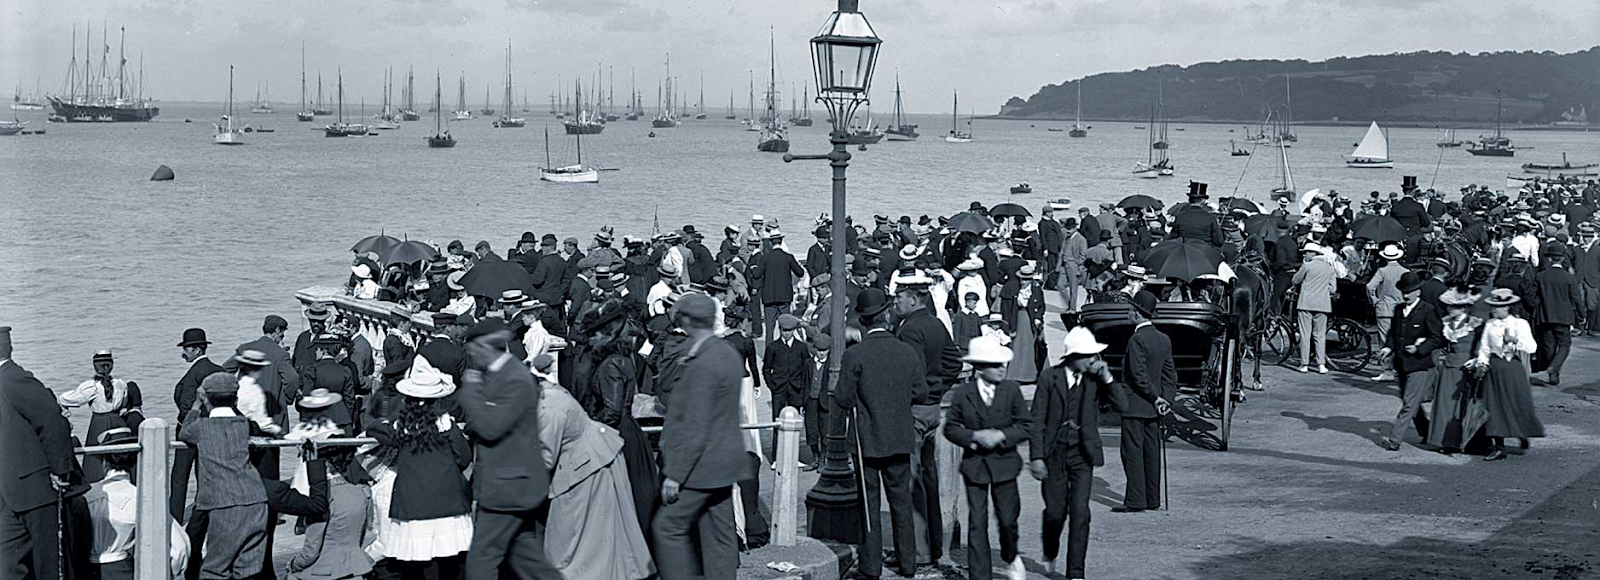 Vintage photo of Cowes